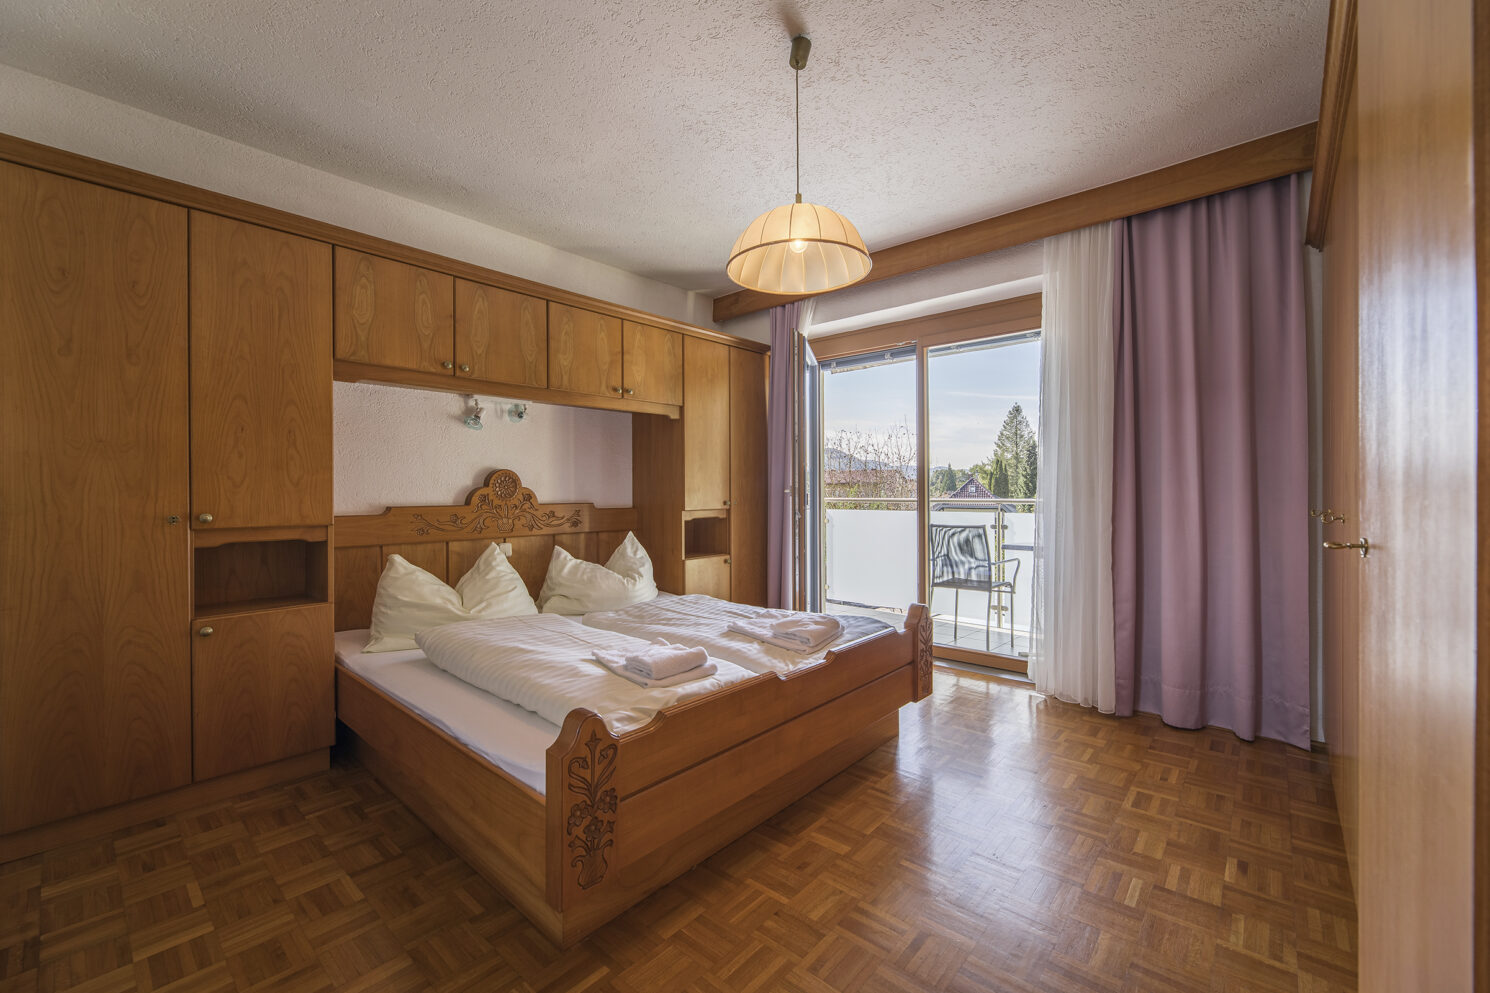 Hotel Ariell - Appartement 1